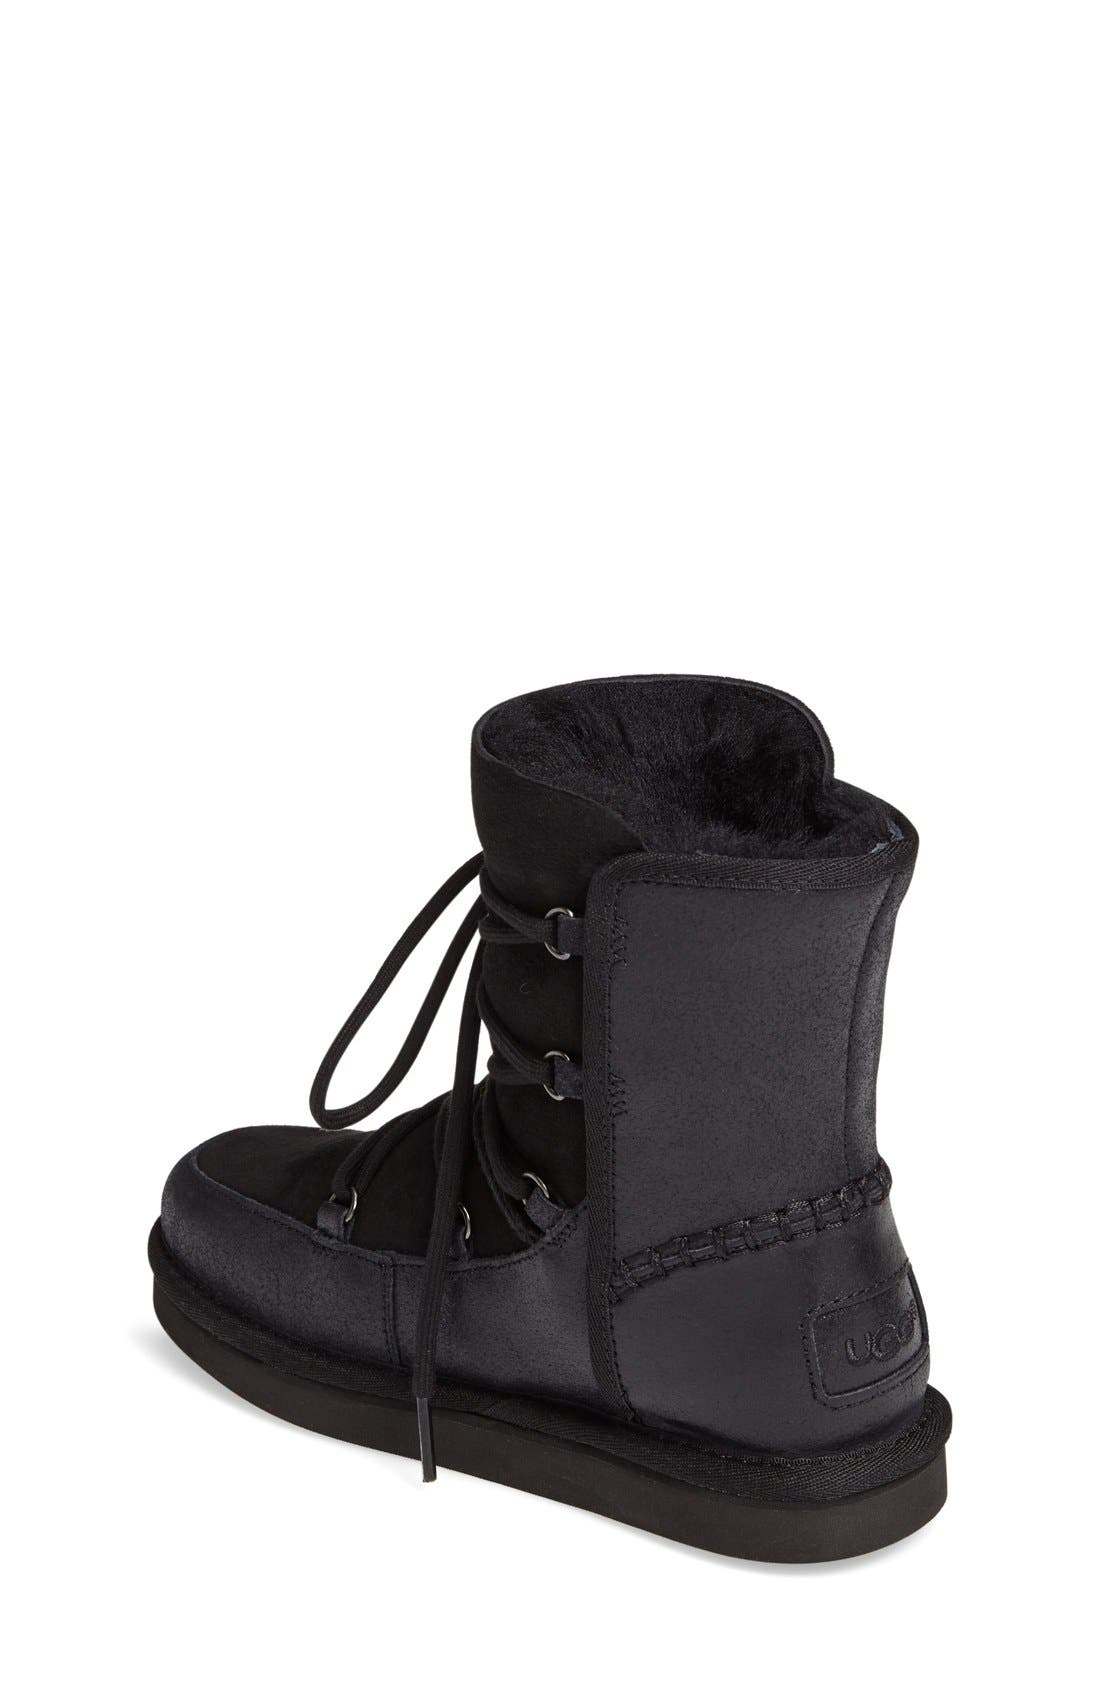 Eliss Water Resistant Suede Boot,                             Alternate thumbnail 15, color,